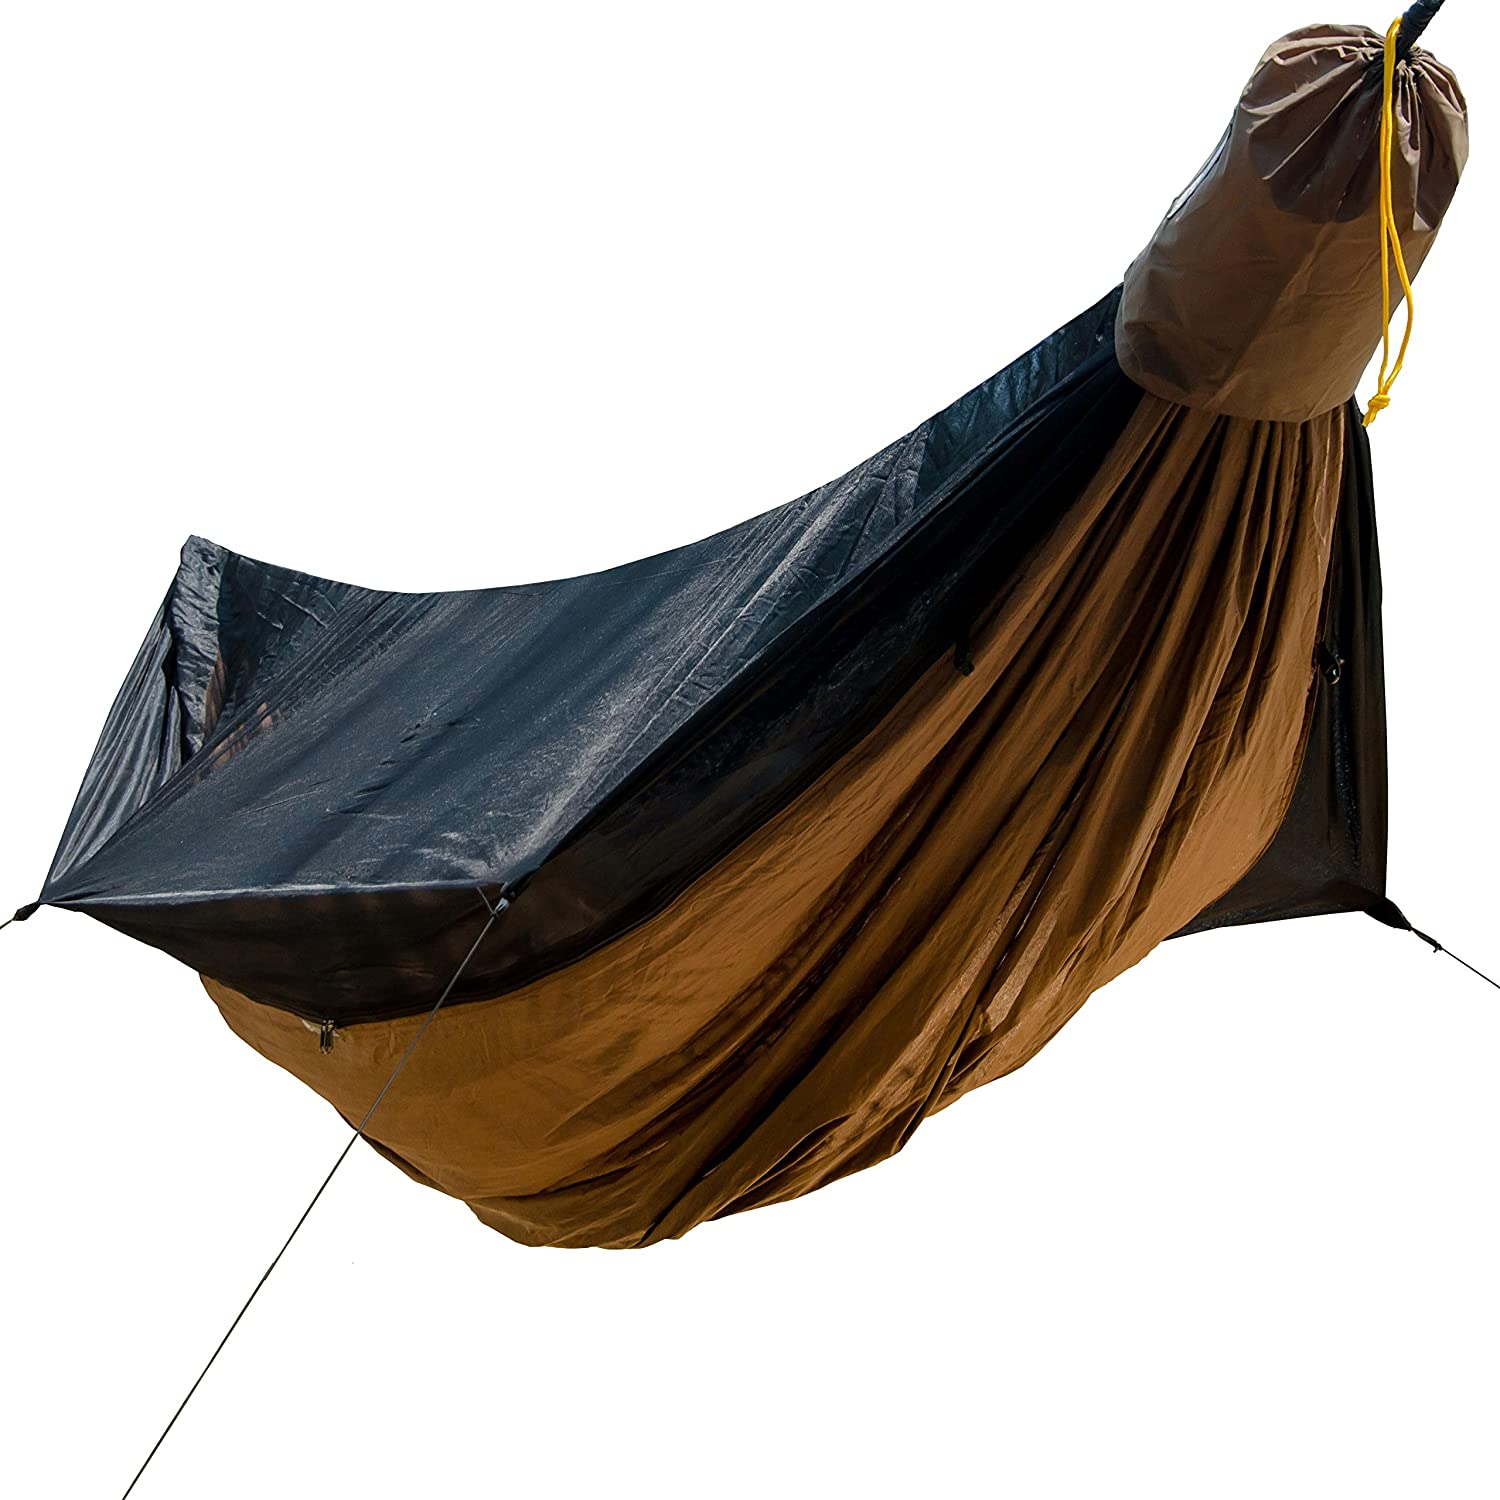 Rapid Deployment Bag Go Camping Hammock 2.0 w// Built-In Mosquito Net Slate Gray by Go Outfitters: 11 Long X 64 Wide  Includes 2 Premium Aluminum Carabiners 4 Stakes /& 4 Shock Cords 4 Stakes and 4 Shock Cords GCH2.0SG